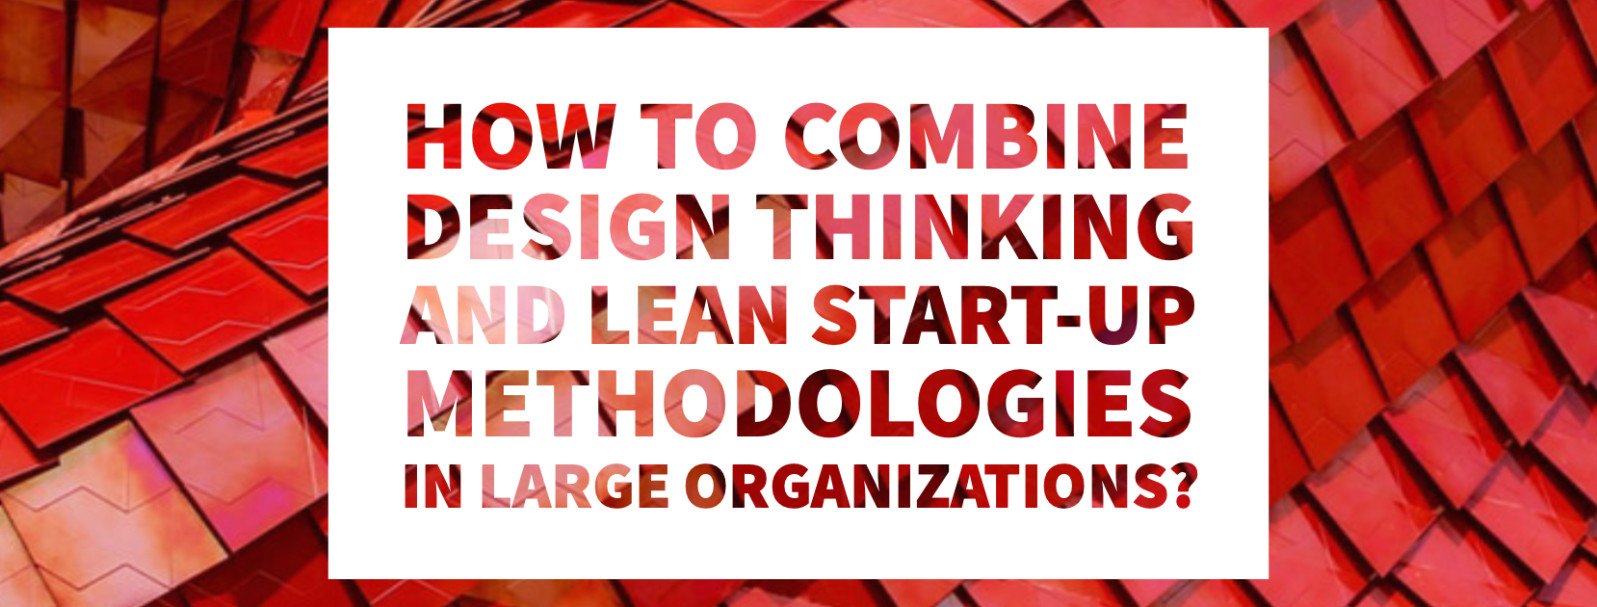 How to combine Design Thinking and Lean Start-Up methodologies in large organizations?